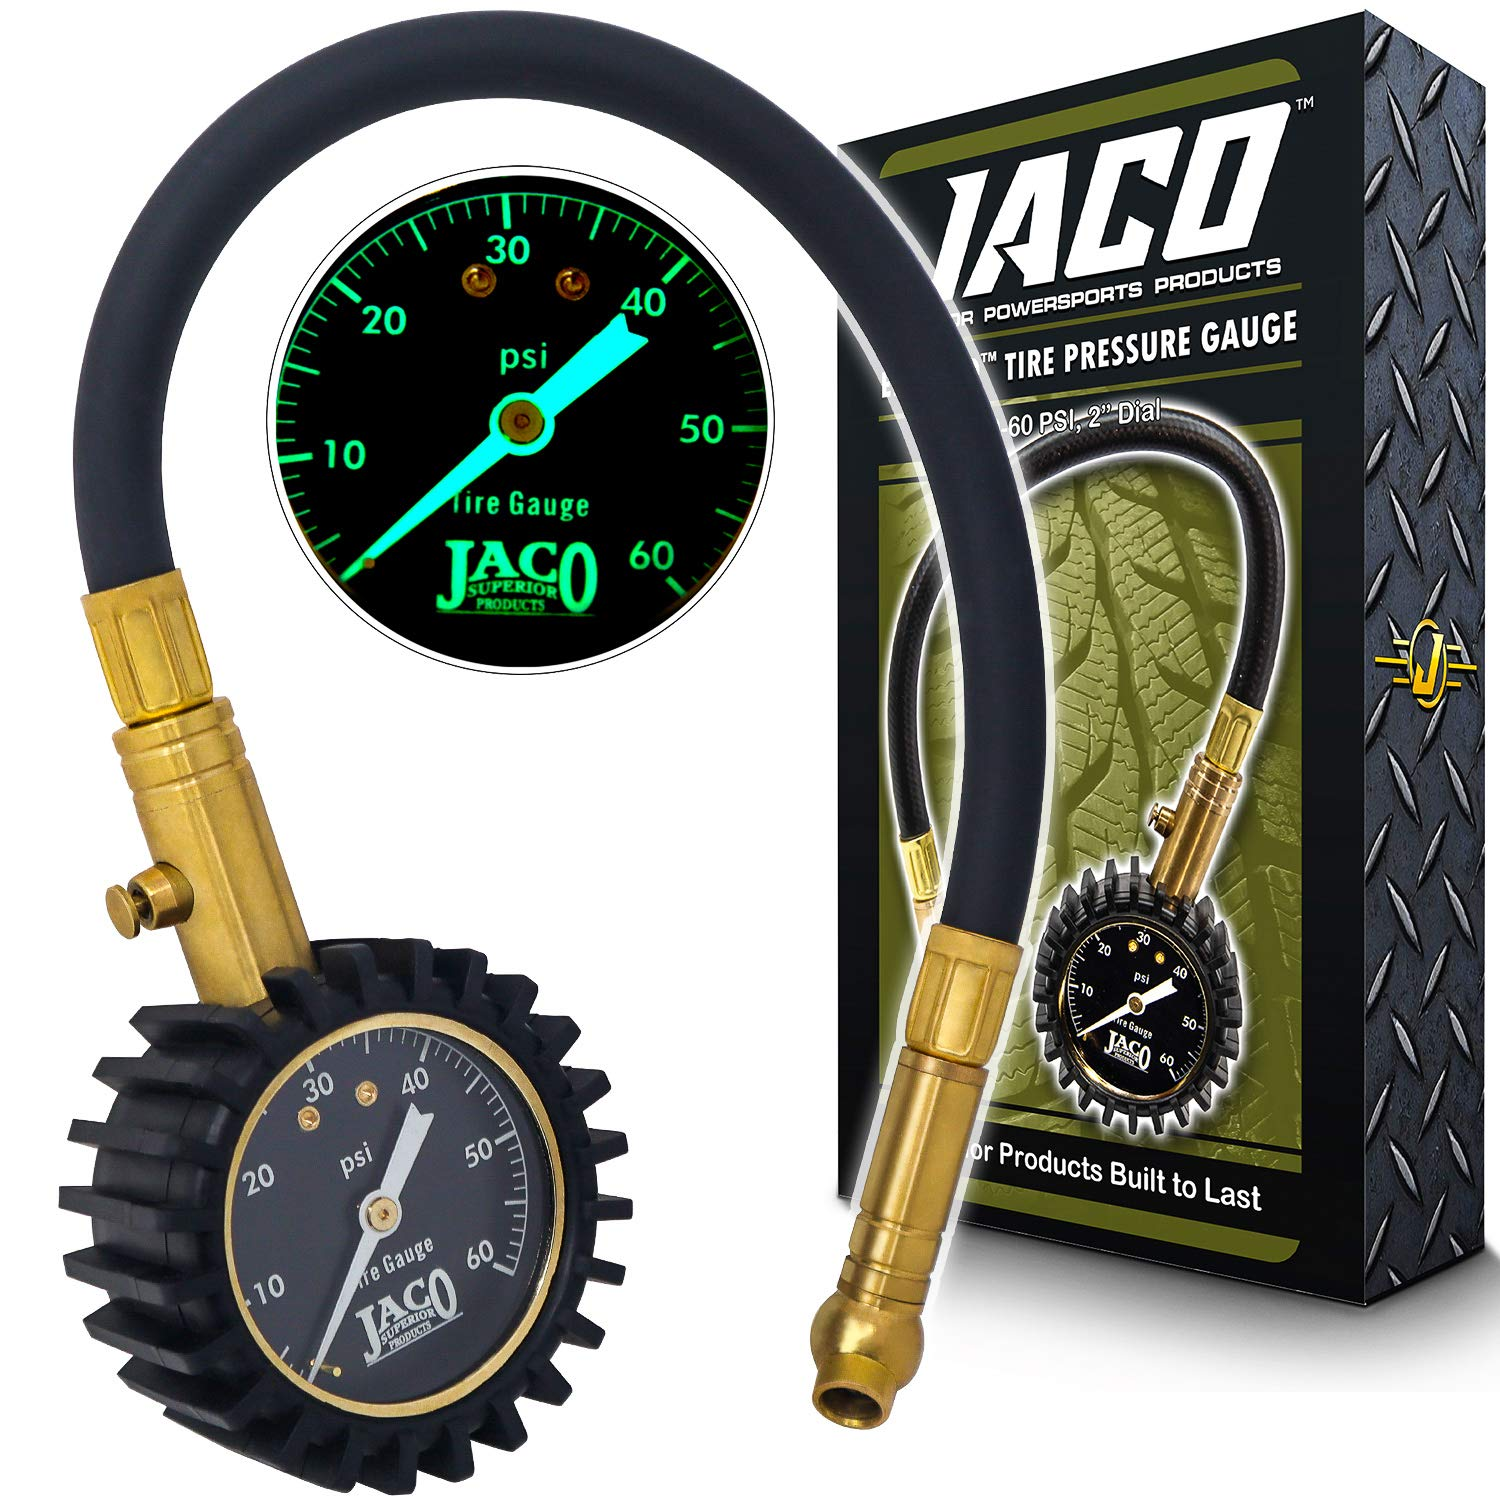 JACO ElitePro Tire Pressure Gauge - 60 PSI by JACO Superior Products